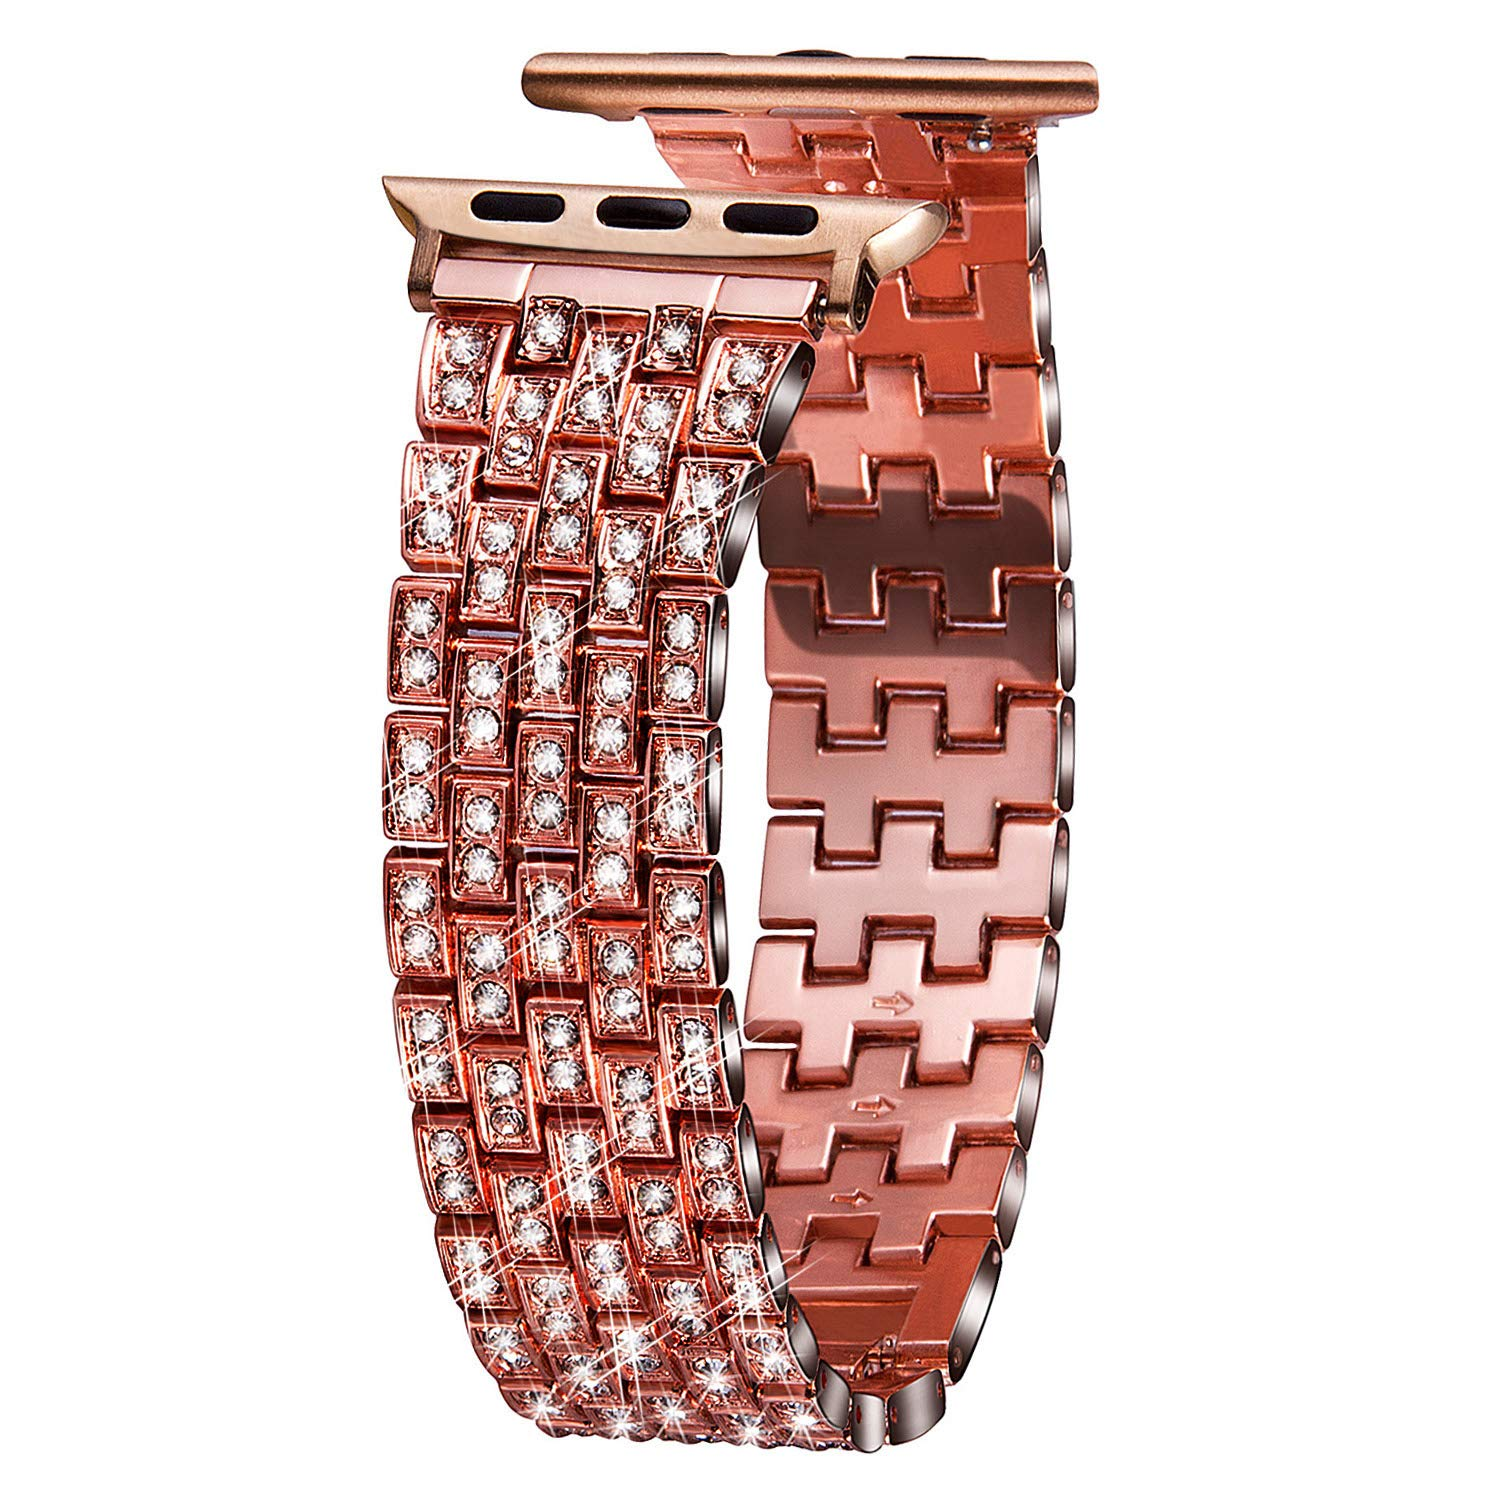 VIQIV Bling Bands for Compatible with Apple Watch Band 38mm 40mm 42mm 44mm iWatch Series 5/4/3/2/1 Luxury Diamond Bracelet Metal Wristband Strap for Women